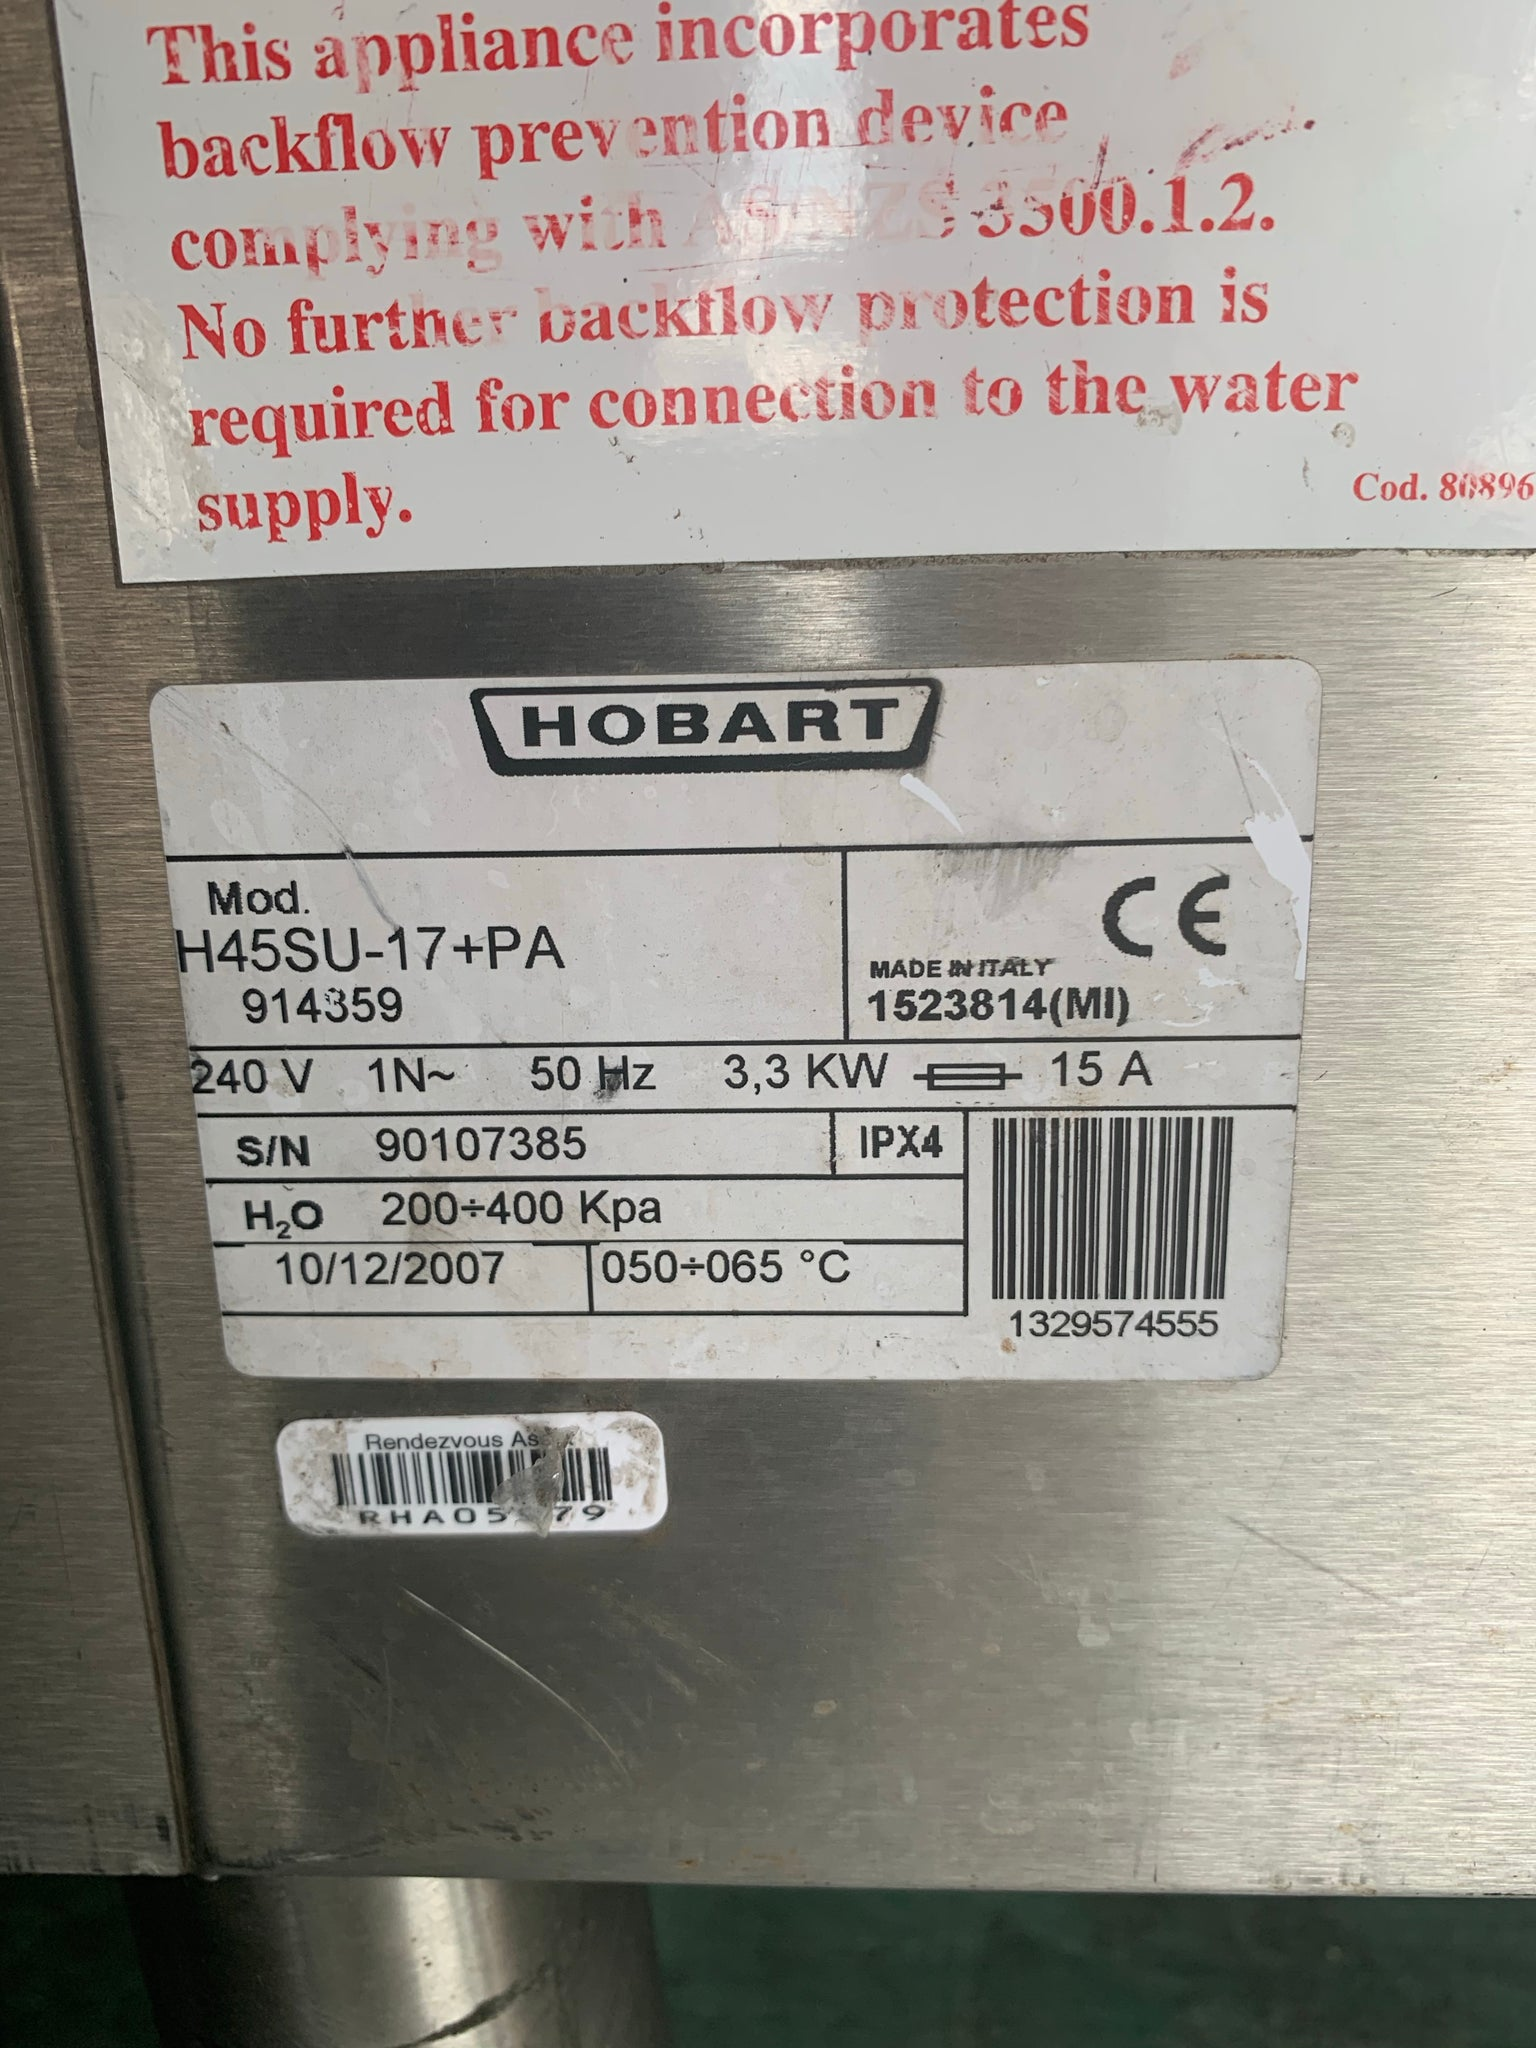 APS088 HOBART H45 SU UNDERCOUNTER COMMWRVIAL DIAHWASHER WITH WARRANTY - Washpro